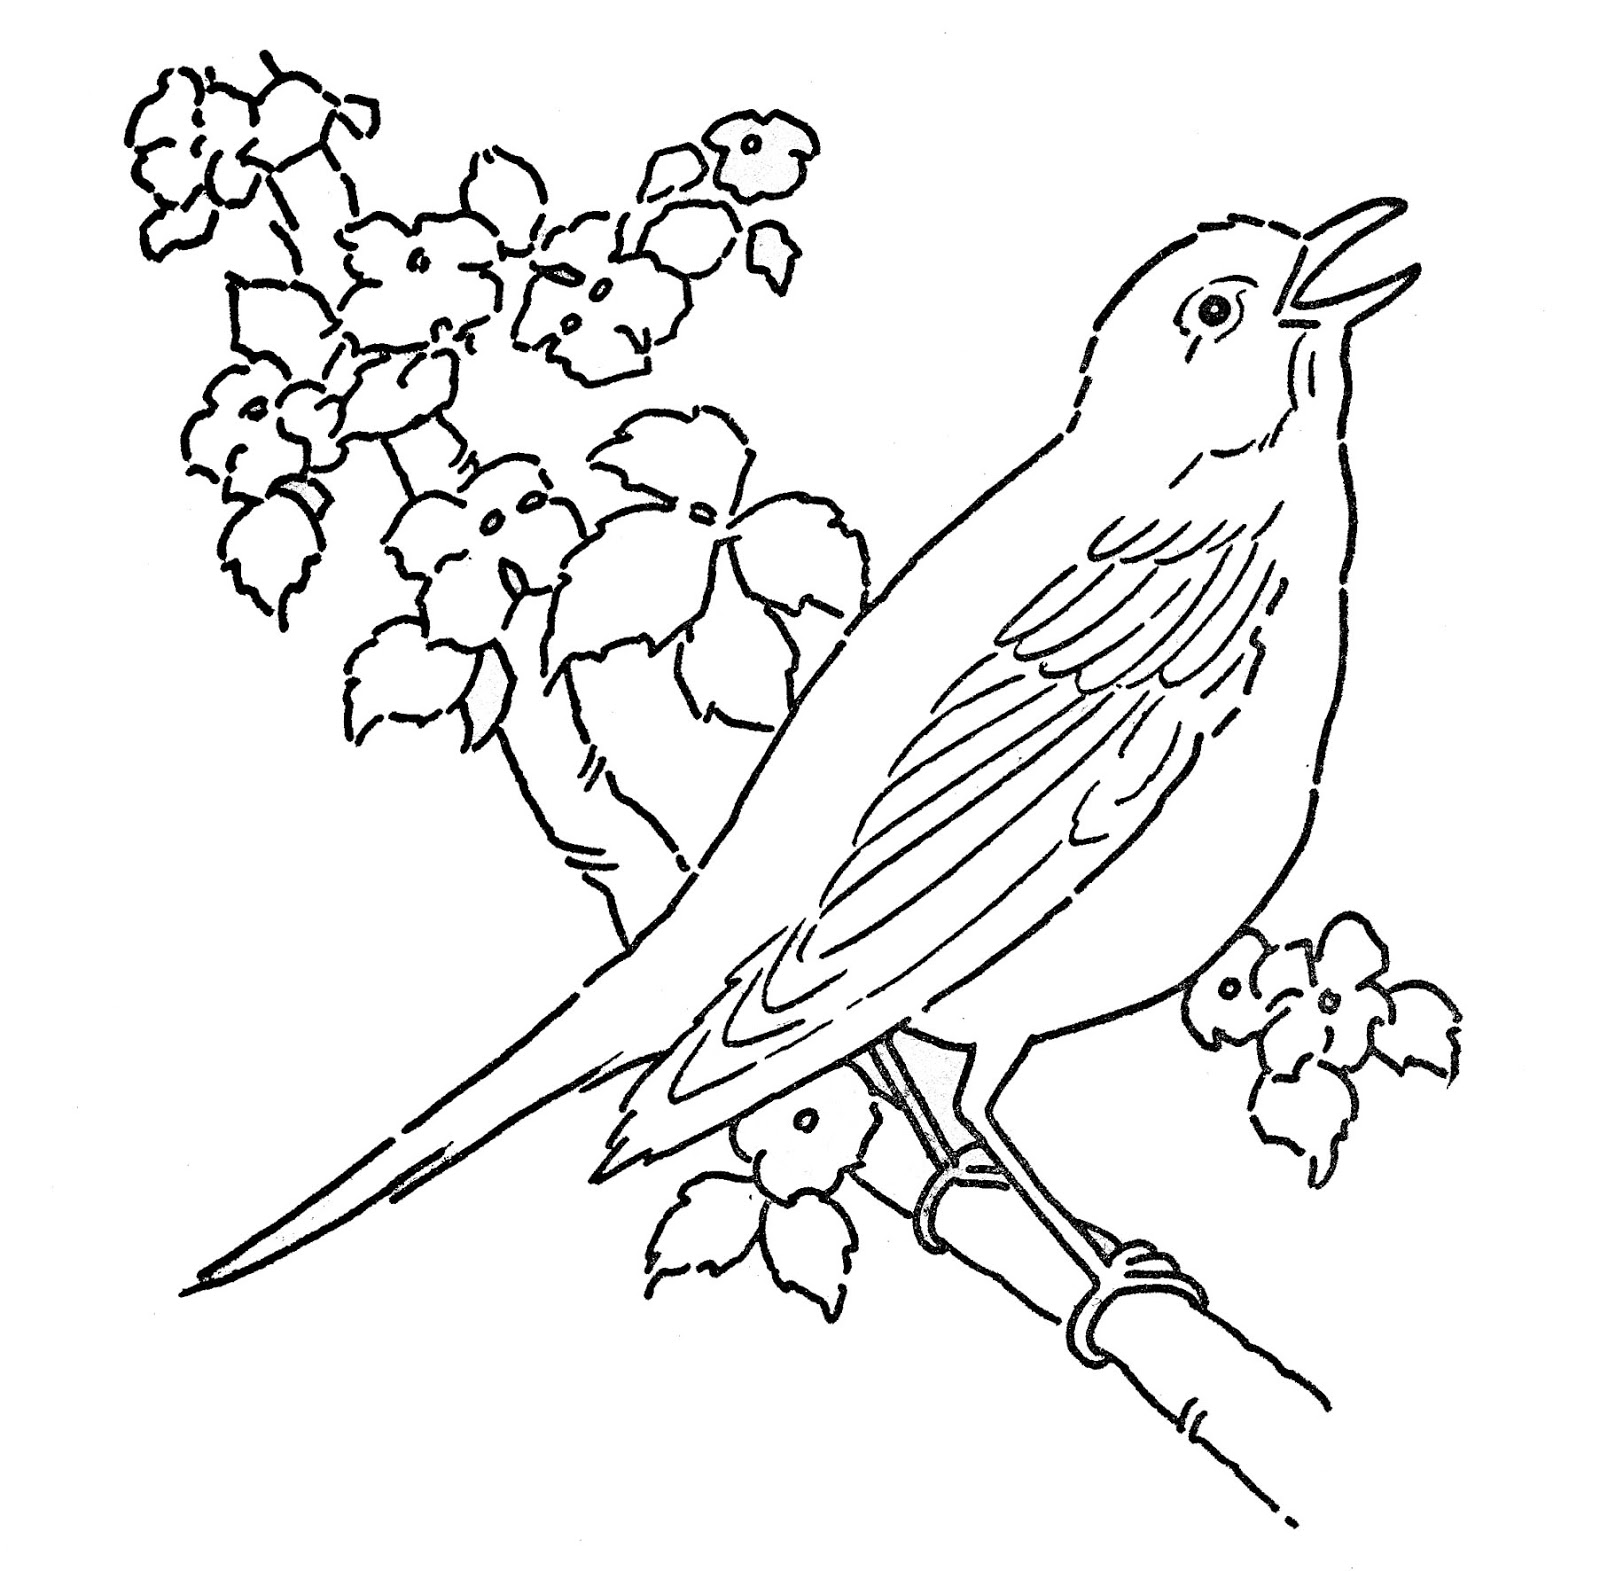 Line Drawing In Computer Graphics : Line drawing of birds clipart best